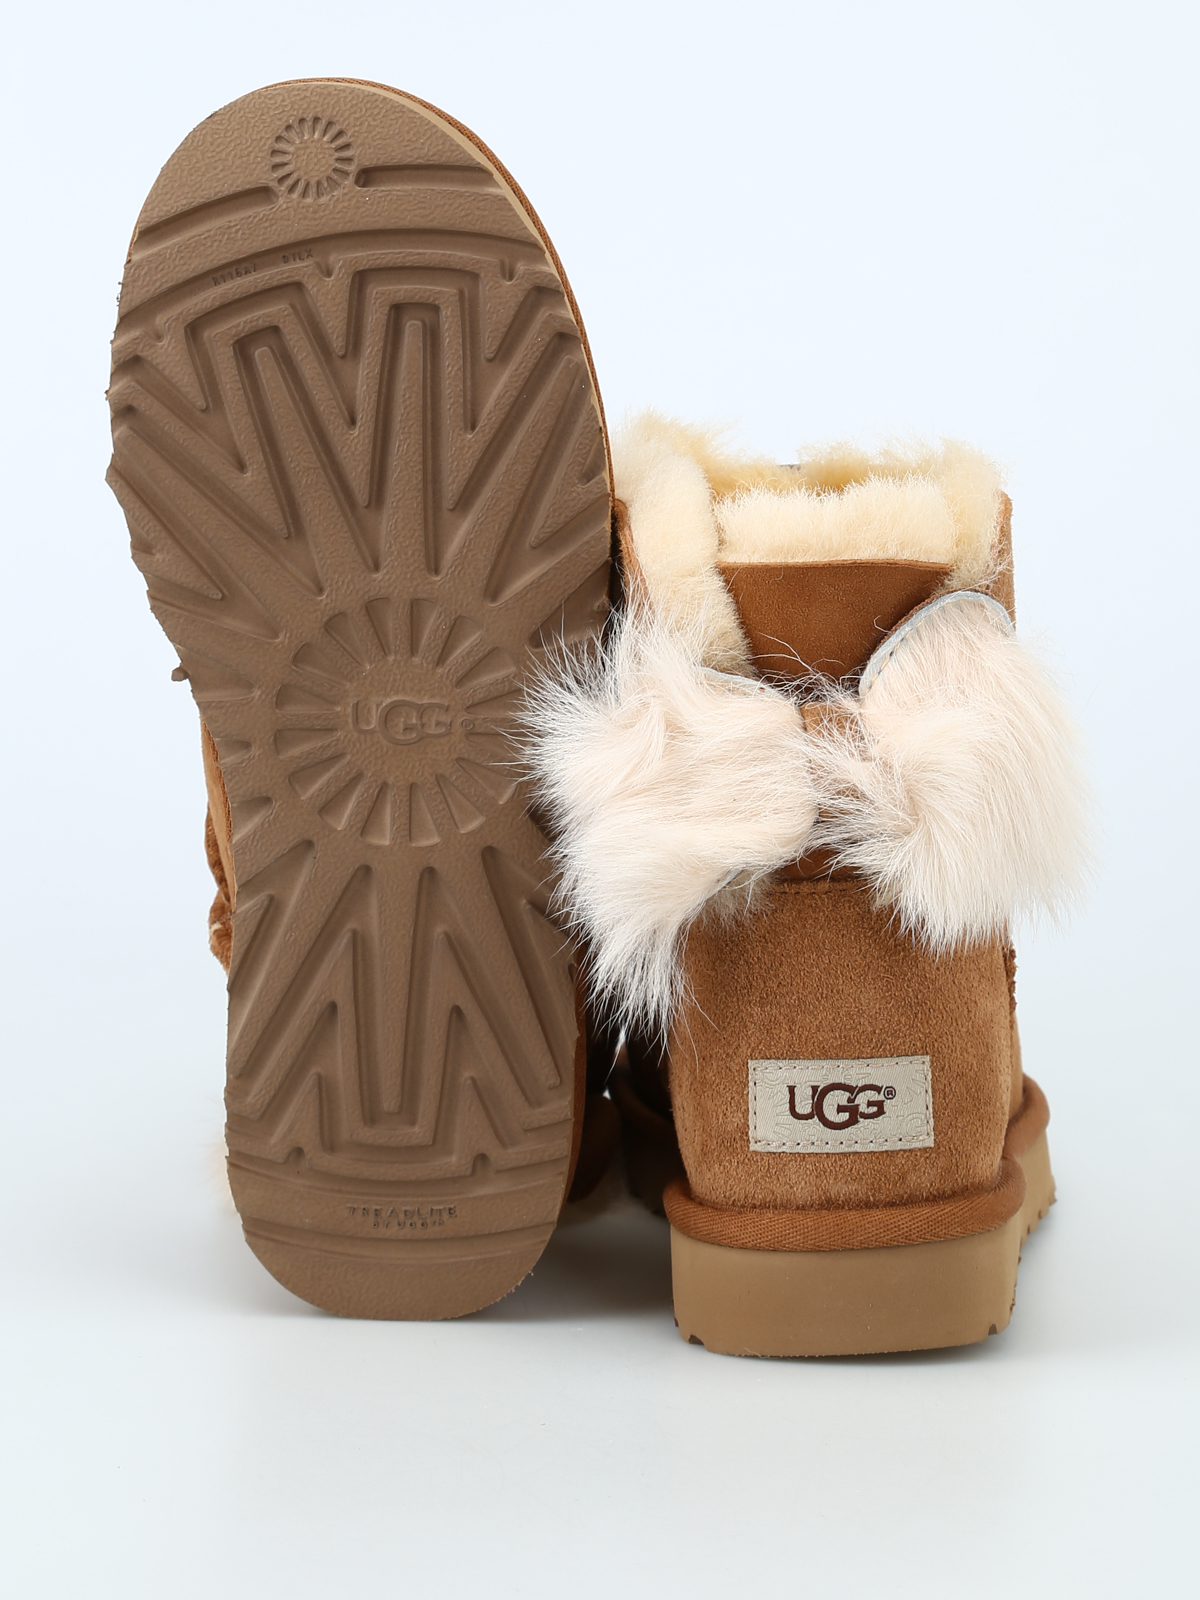 c7b97b785d4 Ugg - Fluff Bow Mini ankle boots - ankle boots - 1094967WCHESTNUT